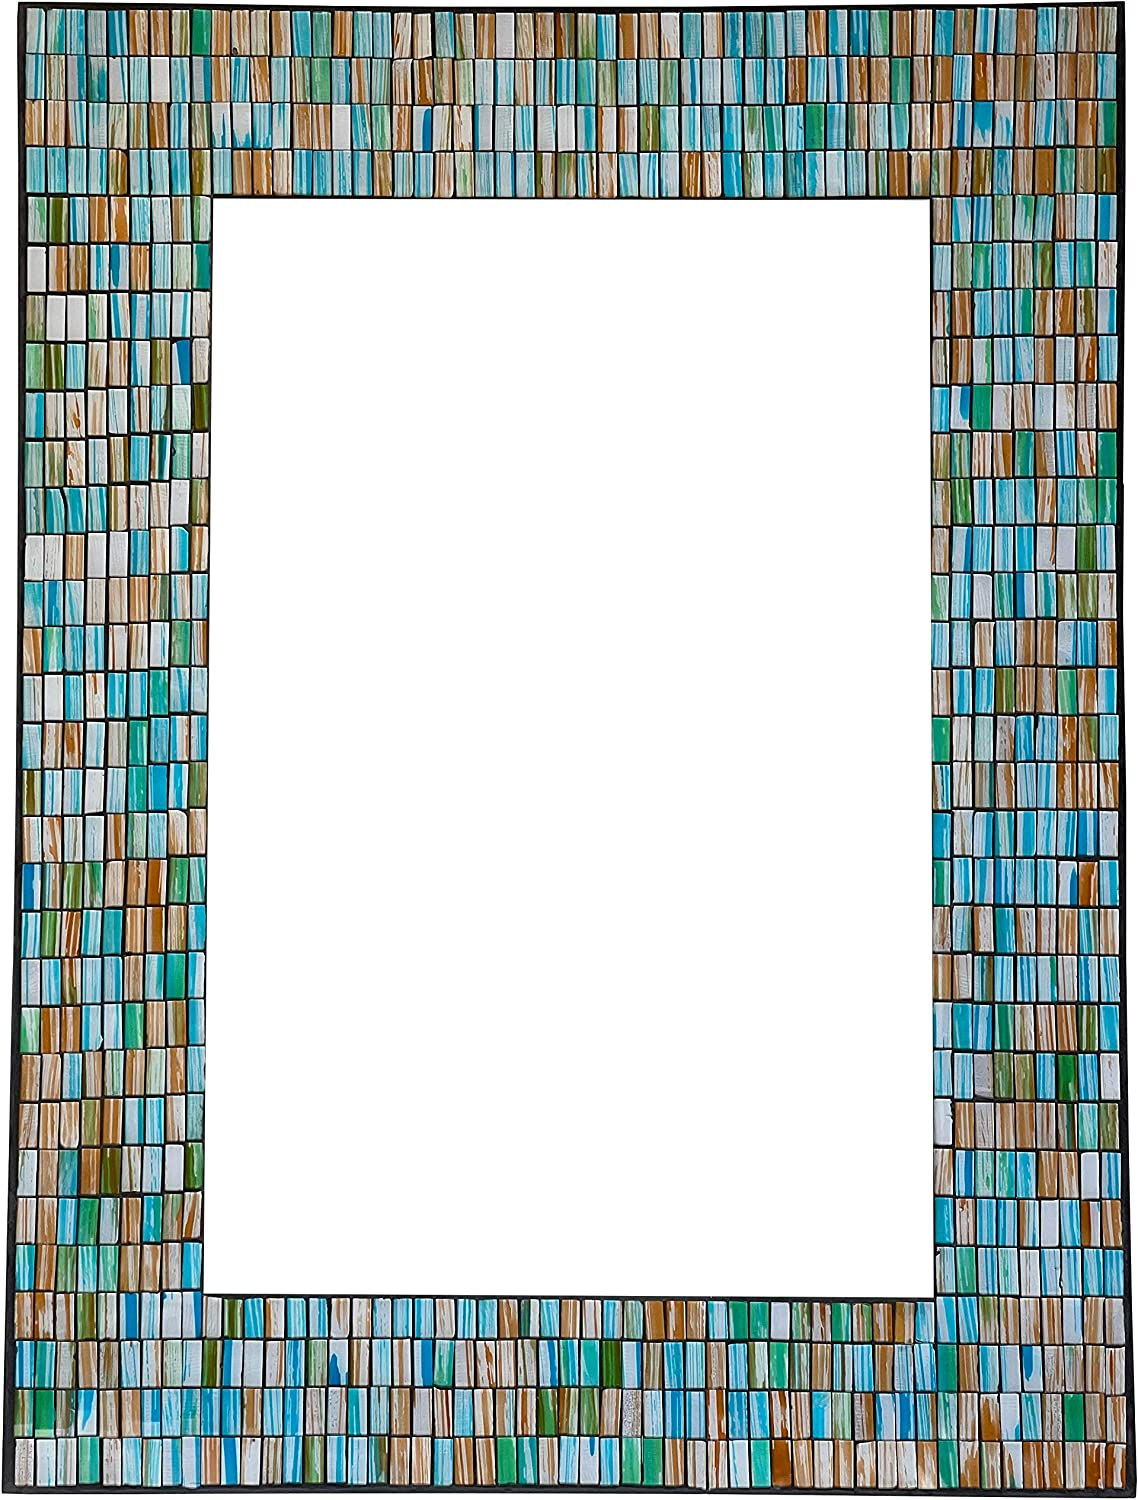 Zorigs Mirror Wall Art Décor – Handcrafted Decorative Wall Mirror, Sea Blue, Turquoise, and Opal Reflective Glass Mosaic Mirror 32